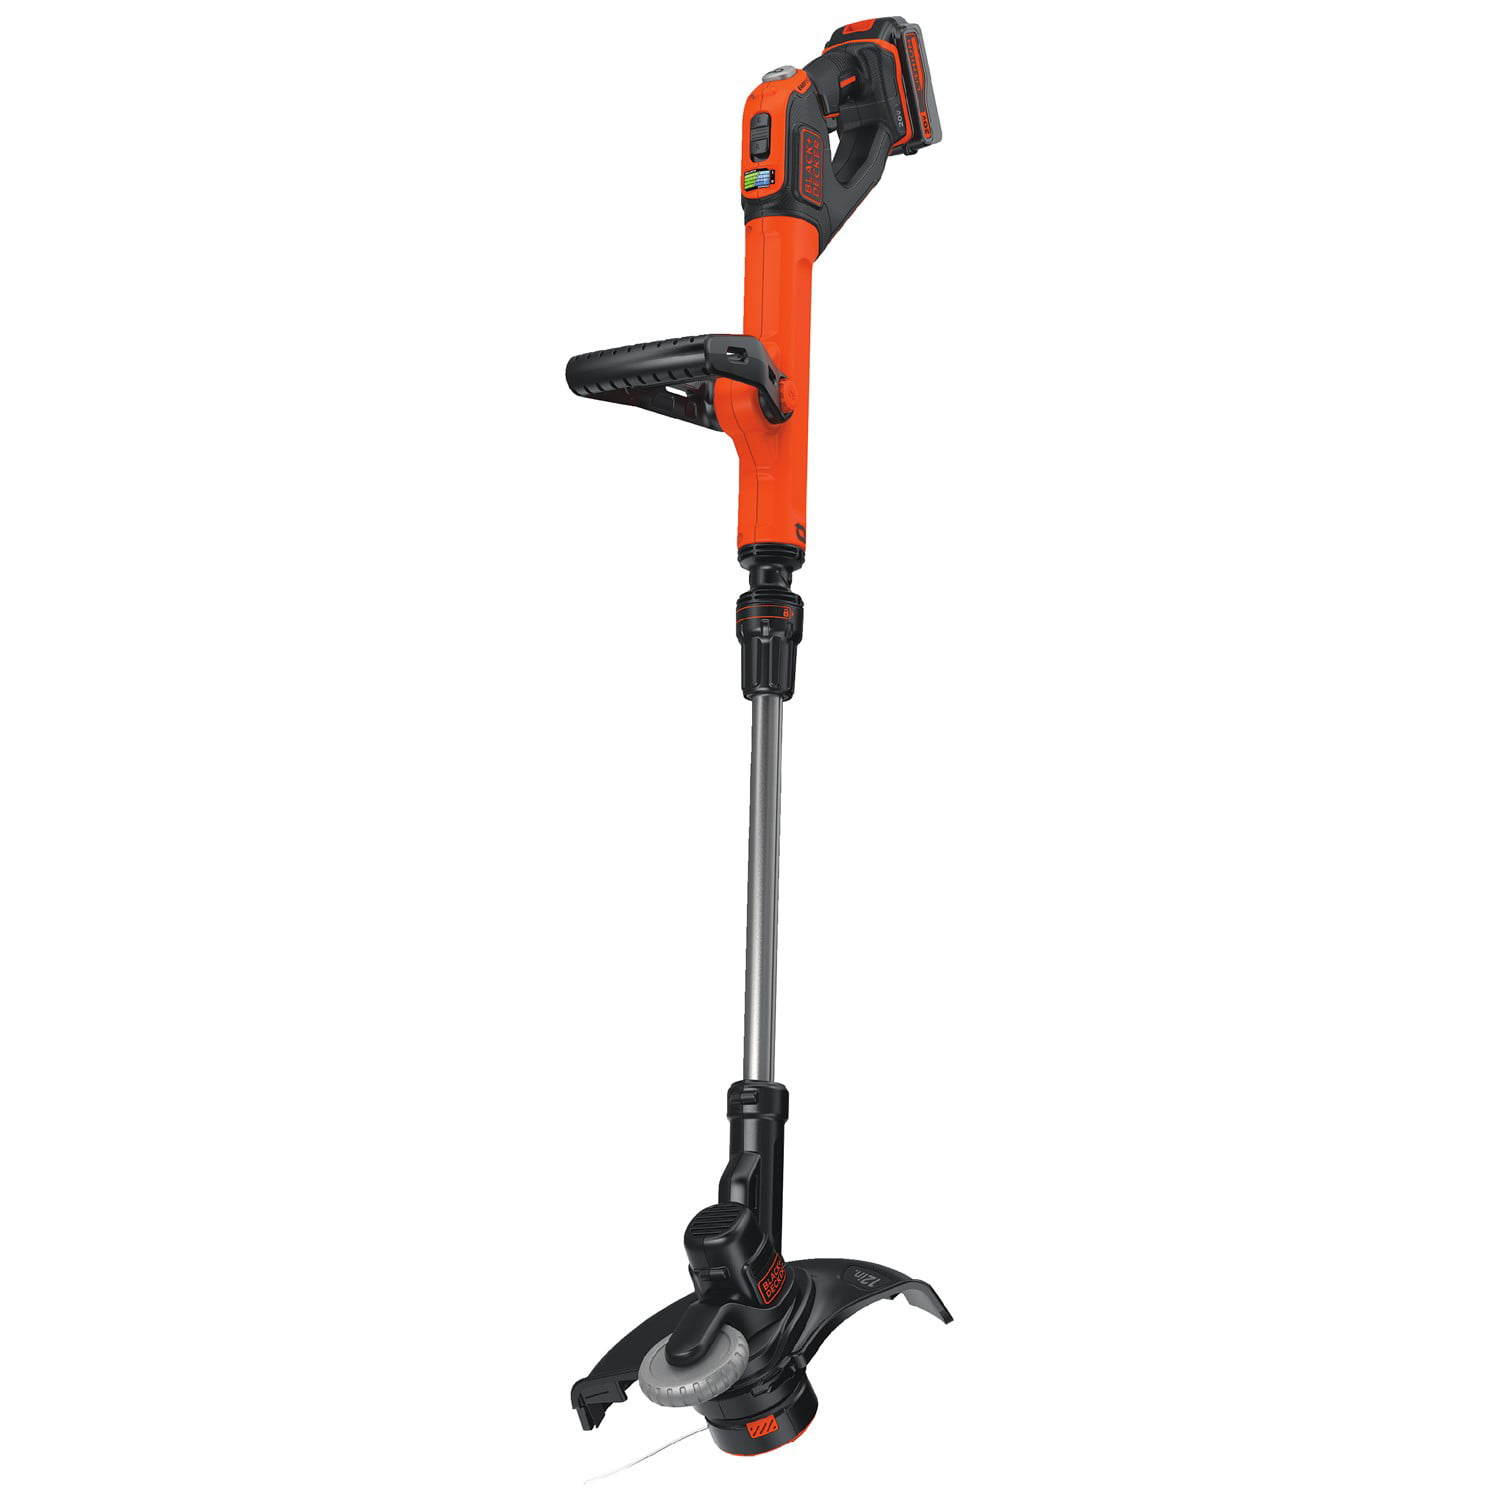 Black & Decker LSTE523 20V MAX Lithium-Ion Easyfeed Cordless String Trimmer   Edger by Stanley Black & Decker